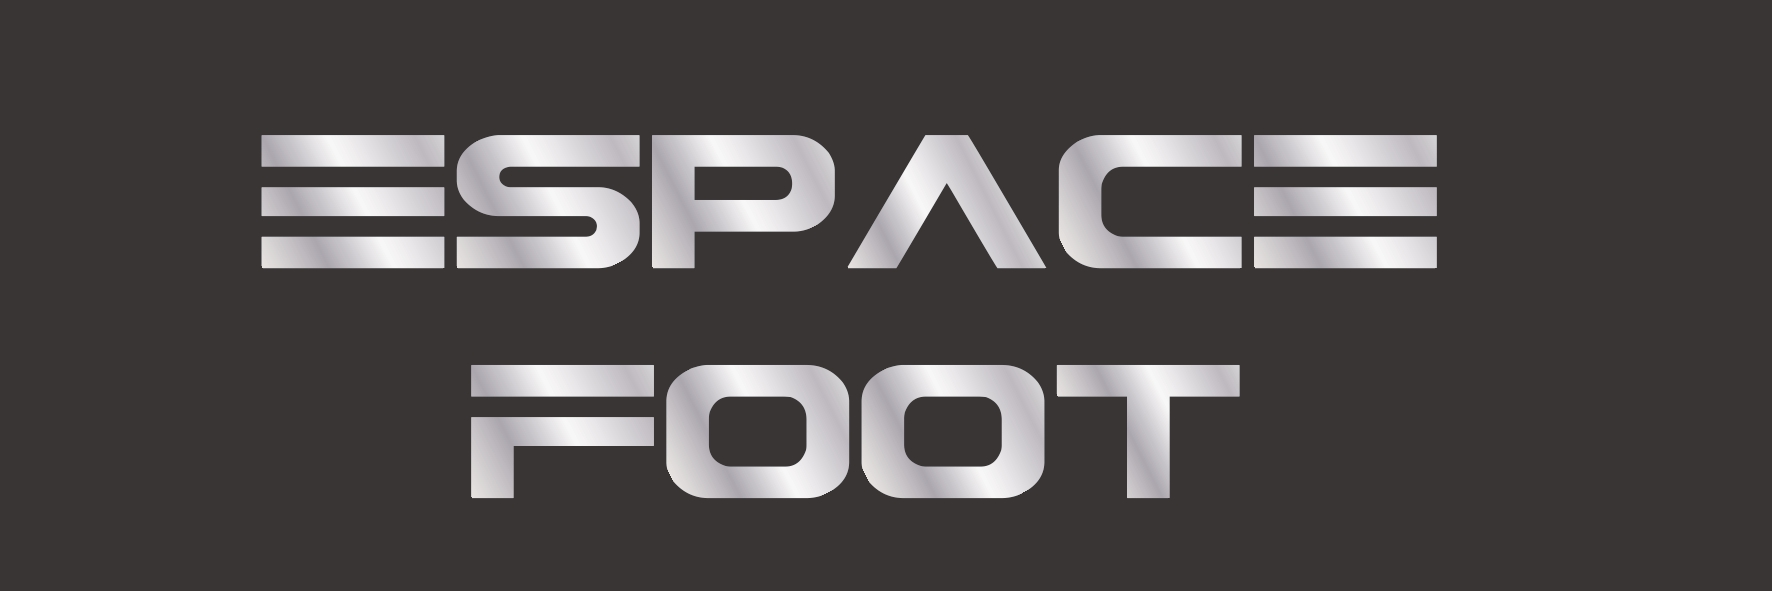 http://usepmm.fr/wp-content/uploads/2021/03/Espace-foot-gris_page-0001.jpg